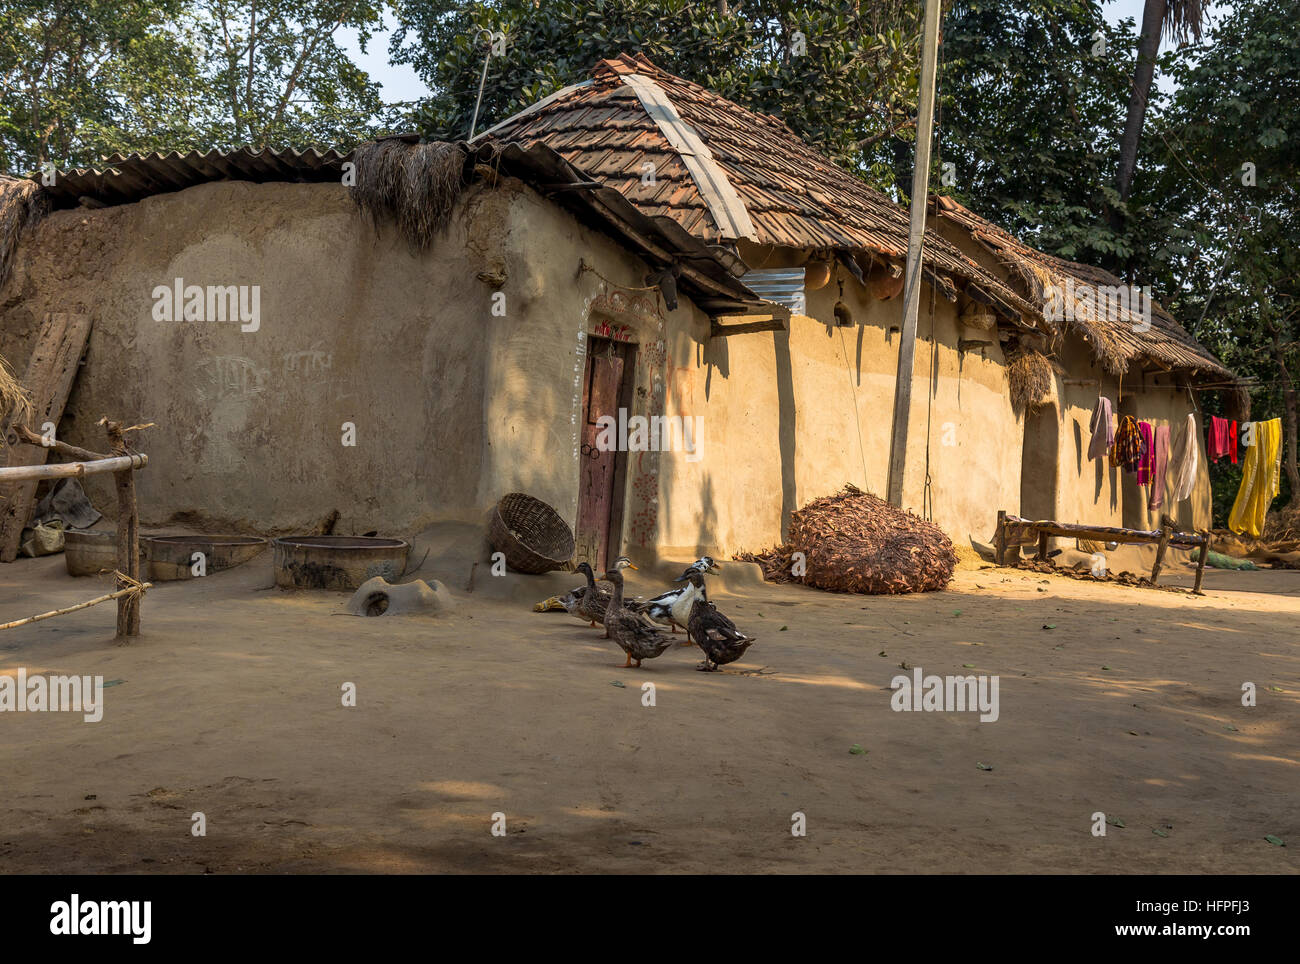 Indian rural village scene with mud houses and ducks in the courtyard photograph taken at